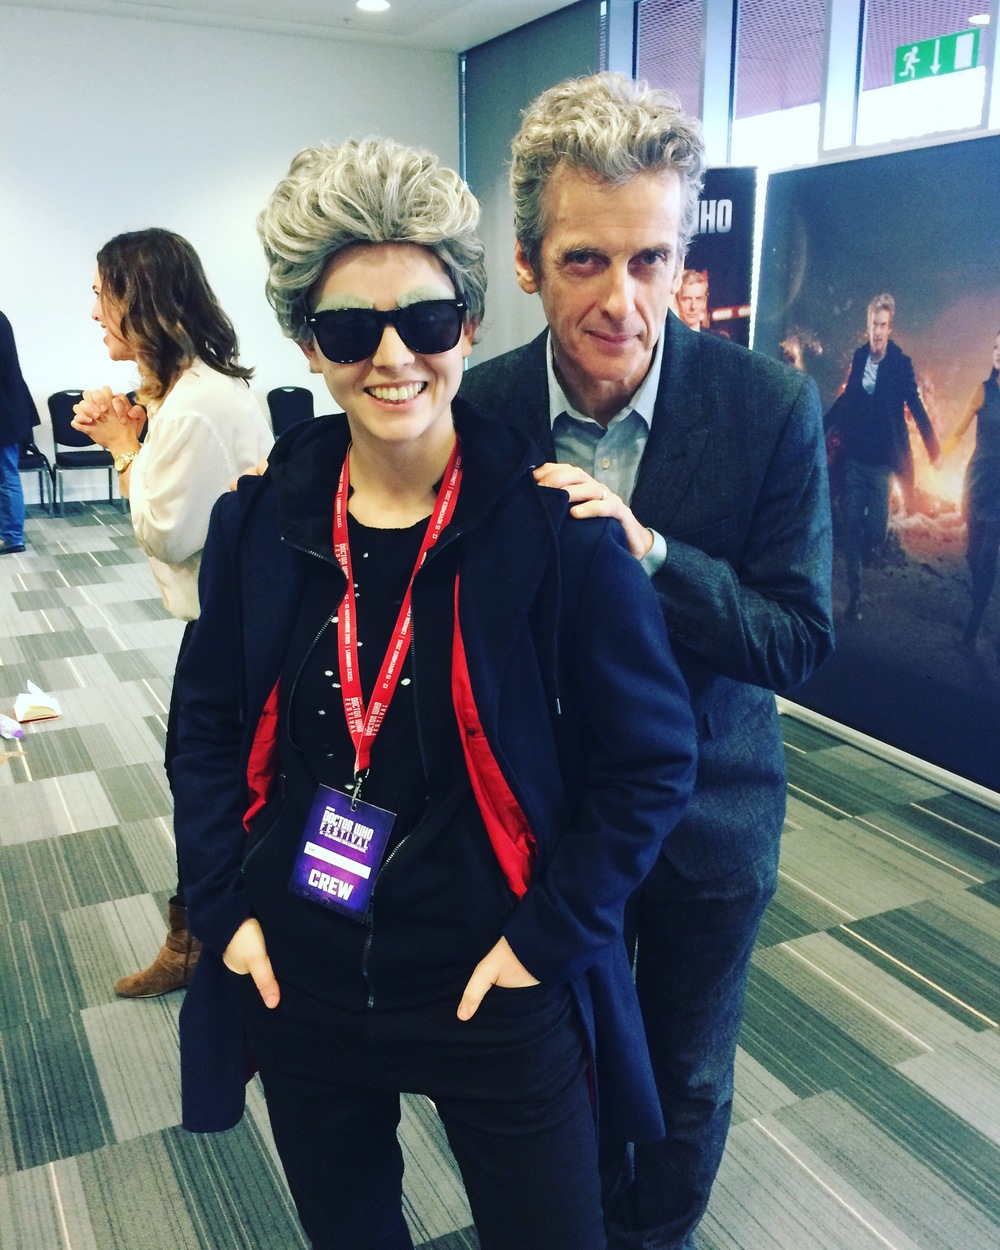 'The Boss' - Peter Capaldi